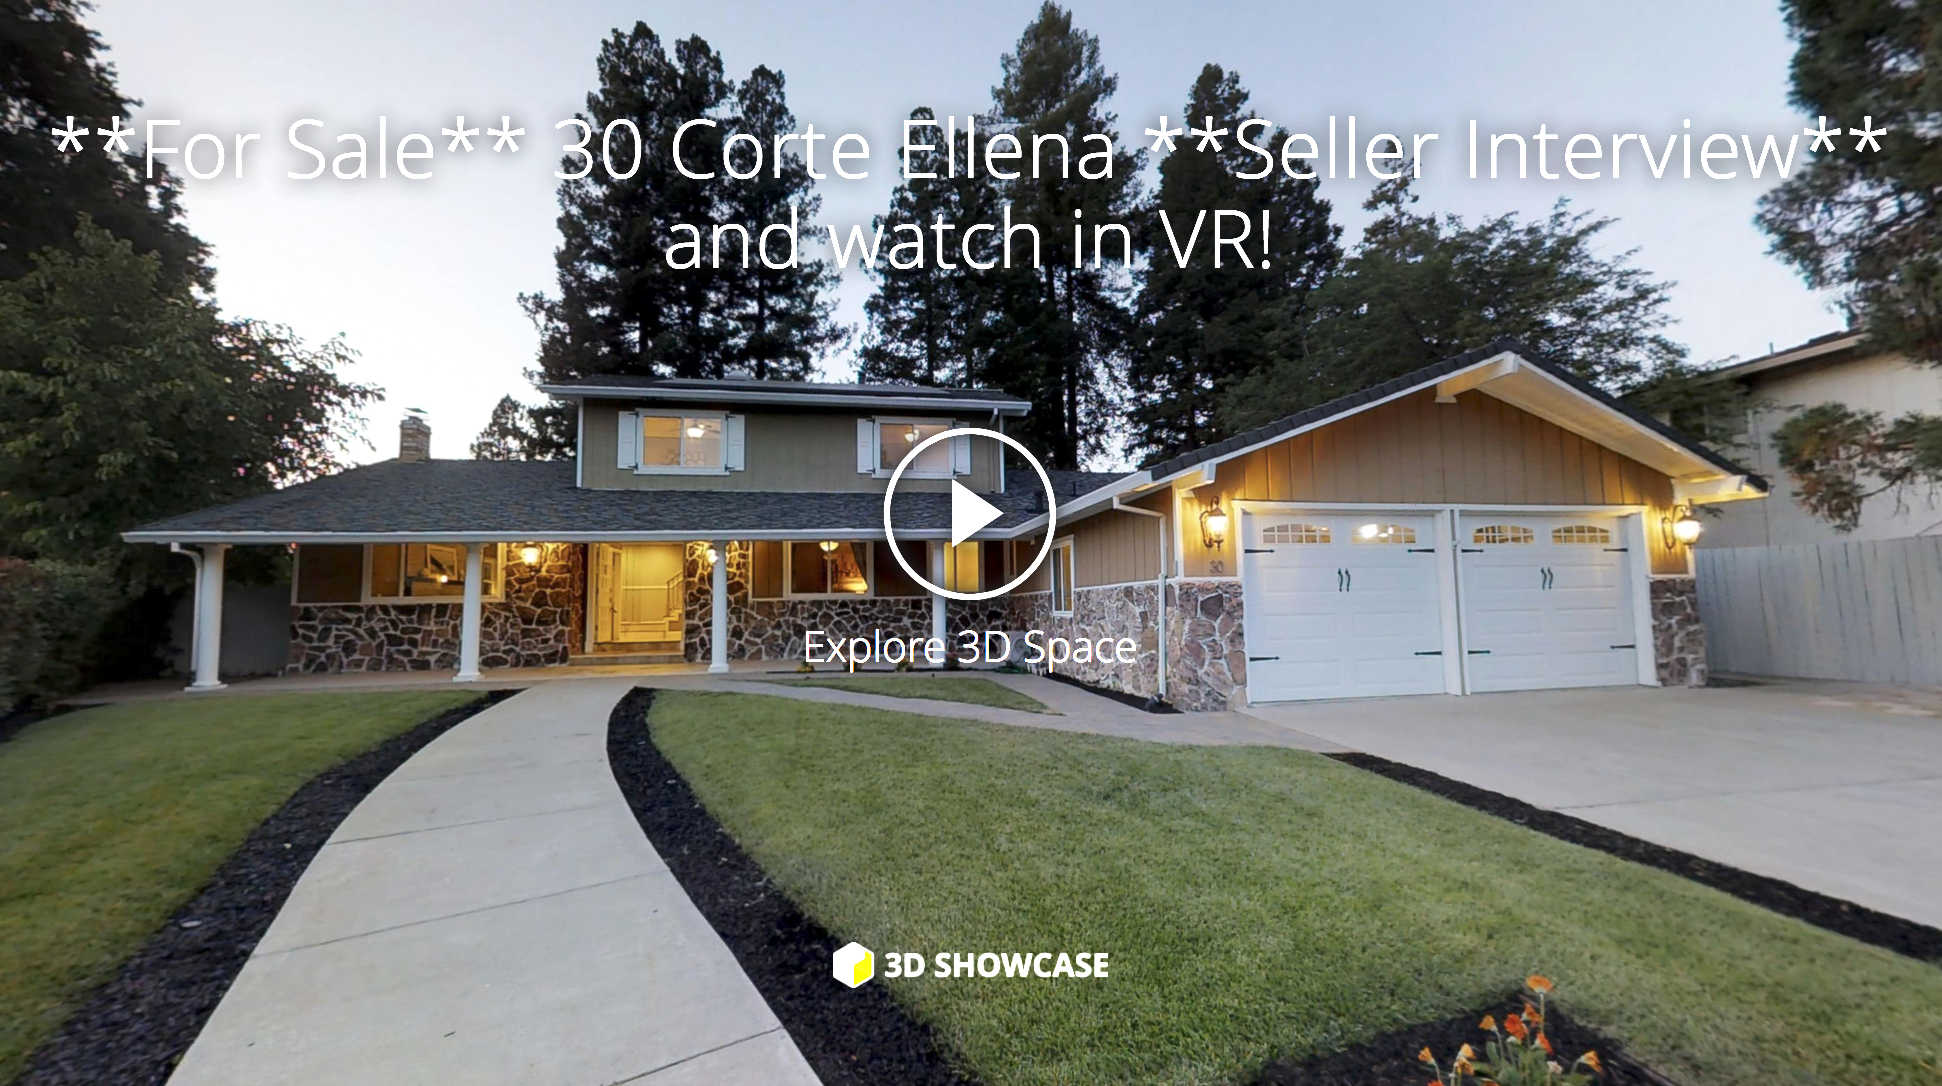 Click the link to watch the interactive 3d tour, even on VR!